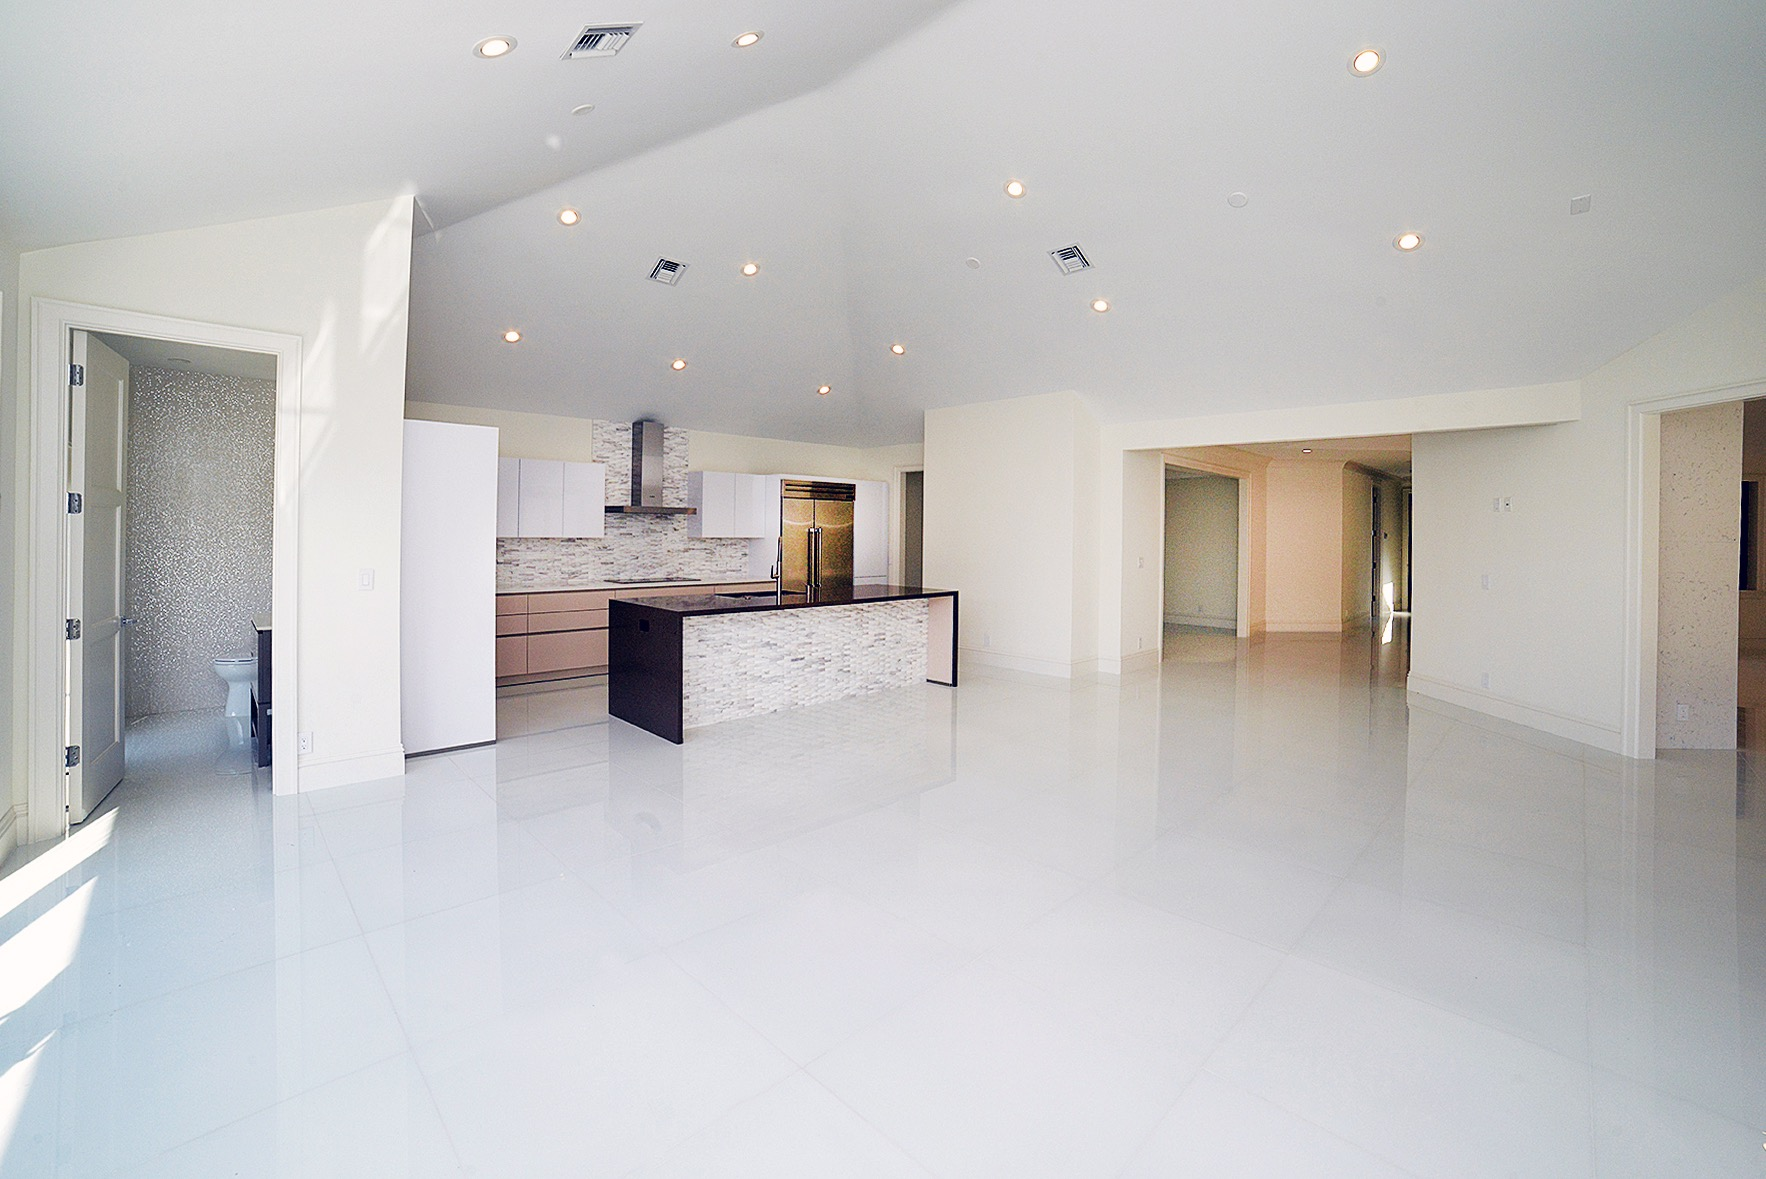 mag real estate & development construction general contractor builder renovation south florida boca raton new custom luxury home for sale interior design st. andrews country club 7026 ayrshire lane 10.jpg